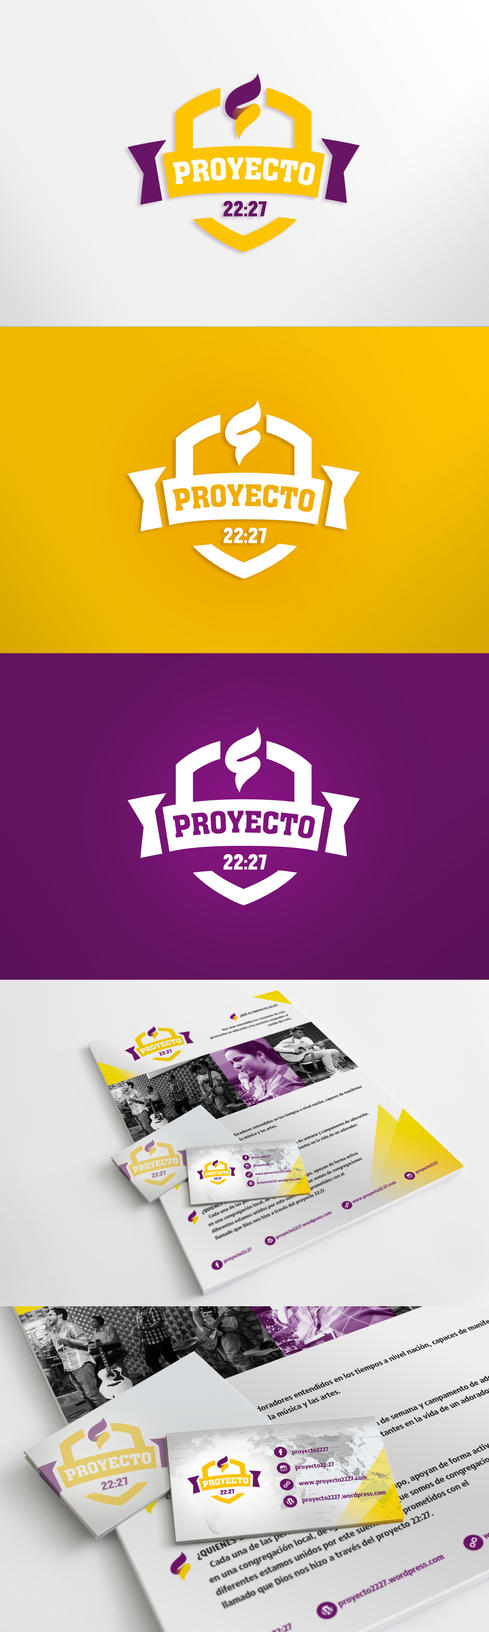 All Pro - Proyecto 22 27 2 by lita-lita